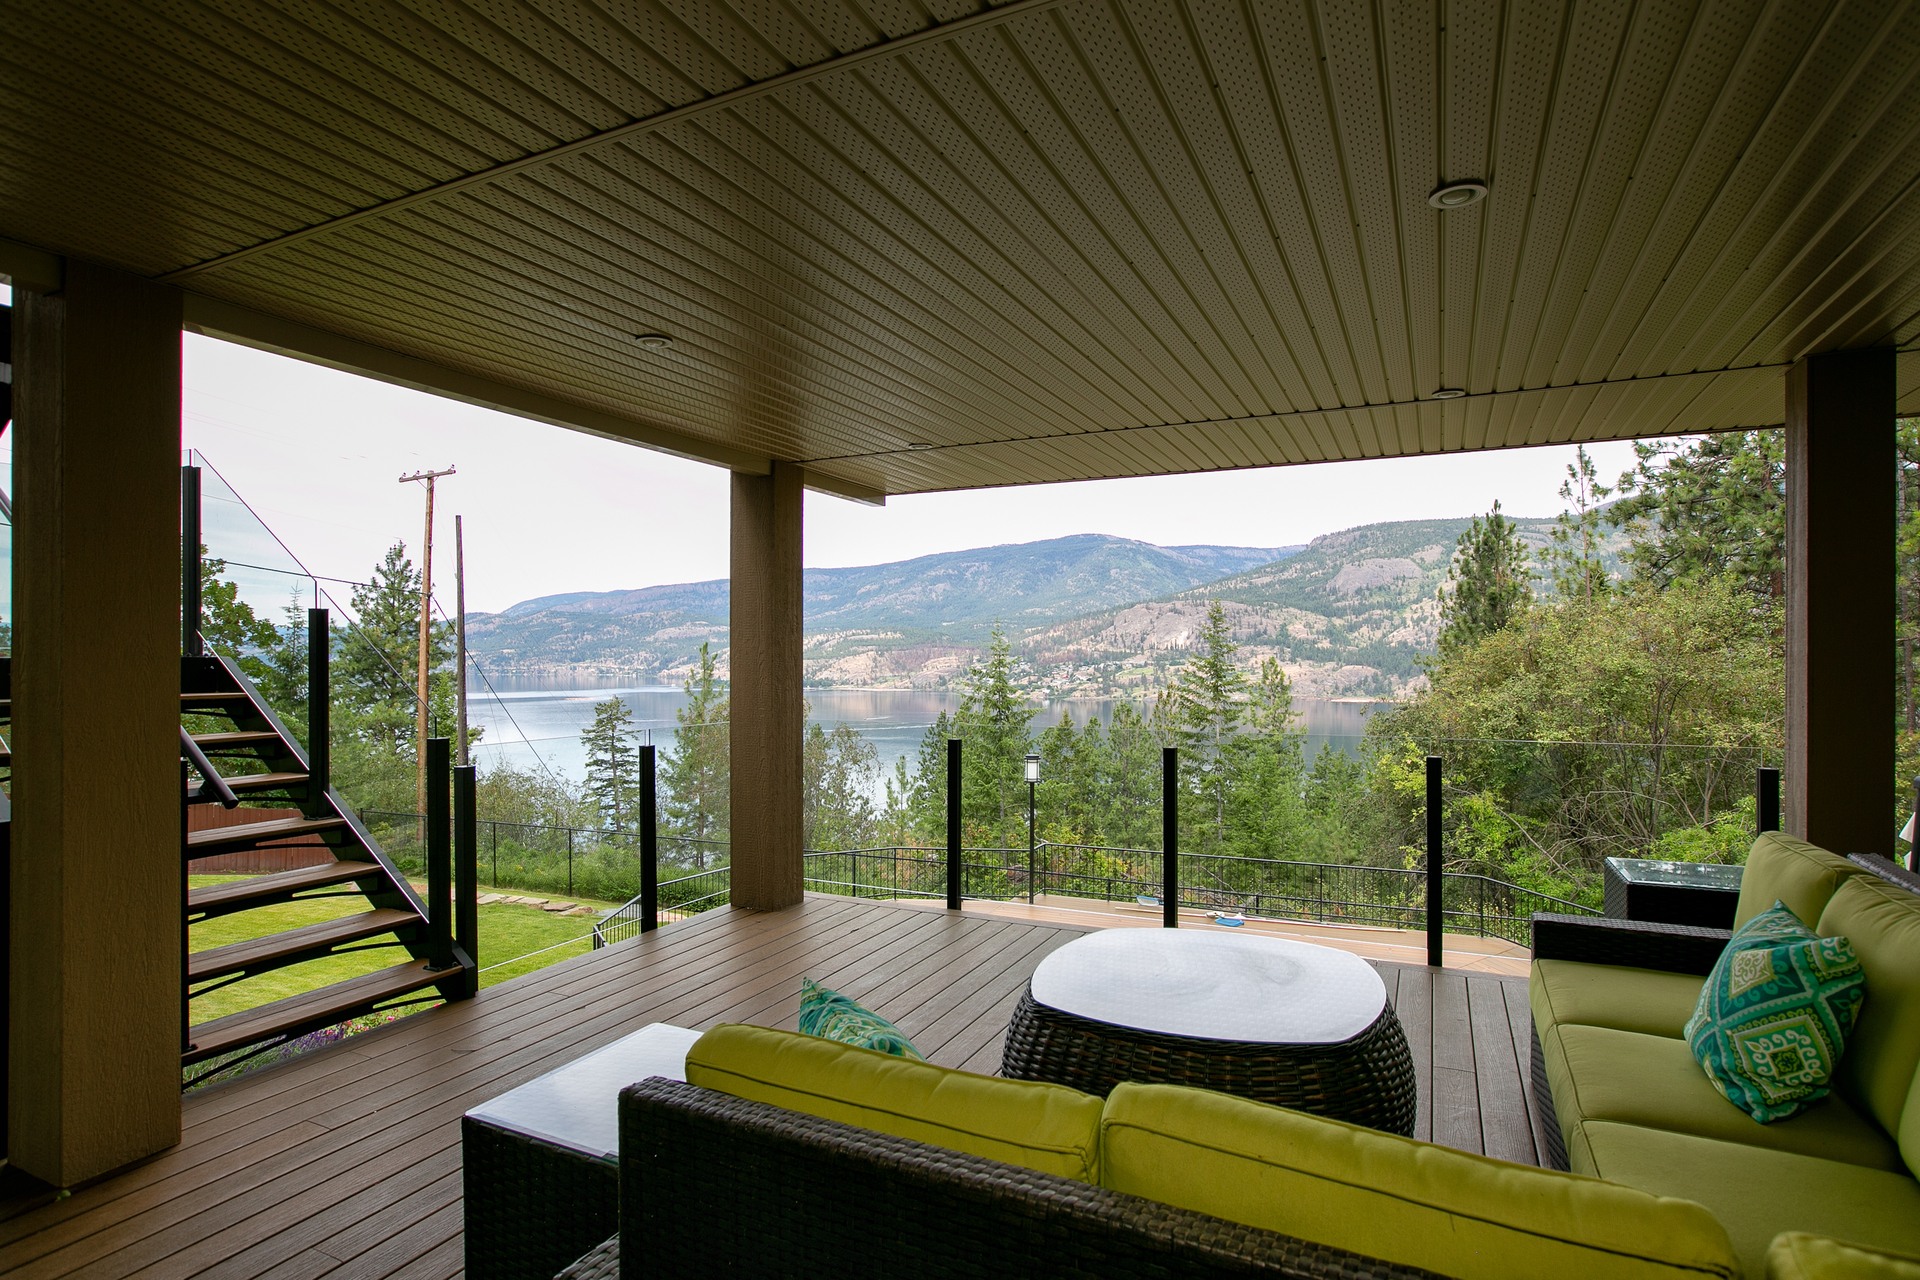 5d3_9306-edit at 312 Clifton Road, Kelowna, Central Okanagan